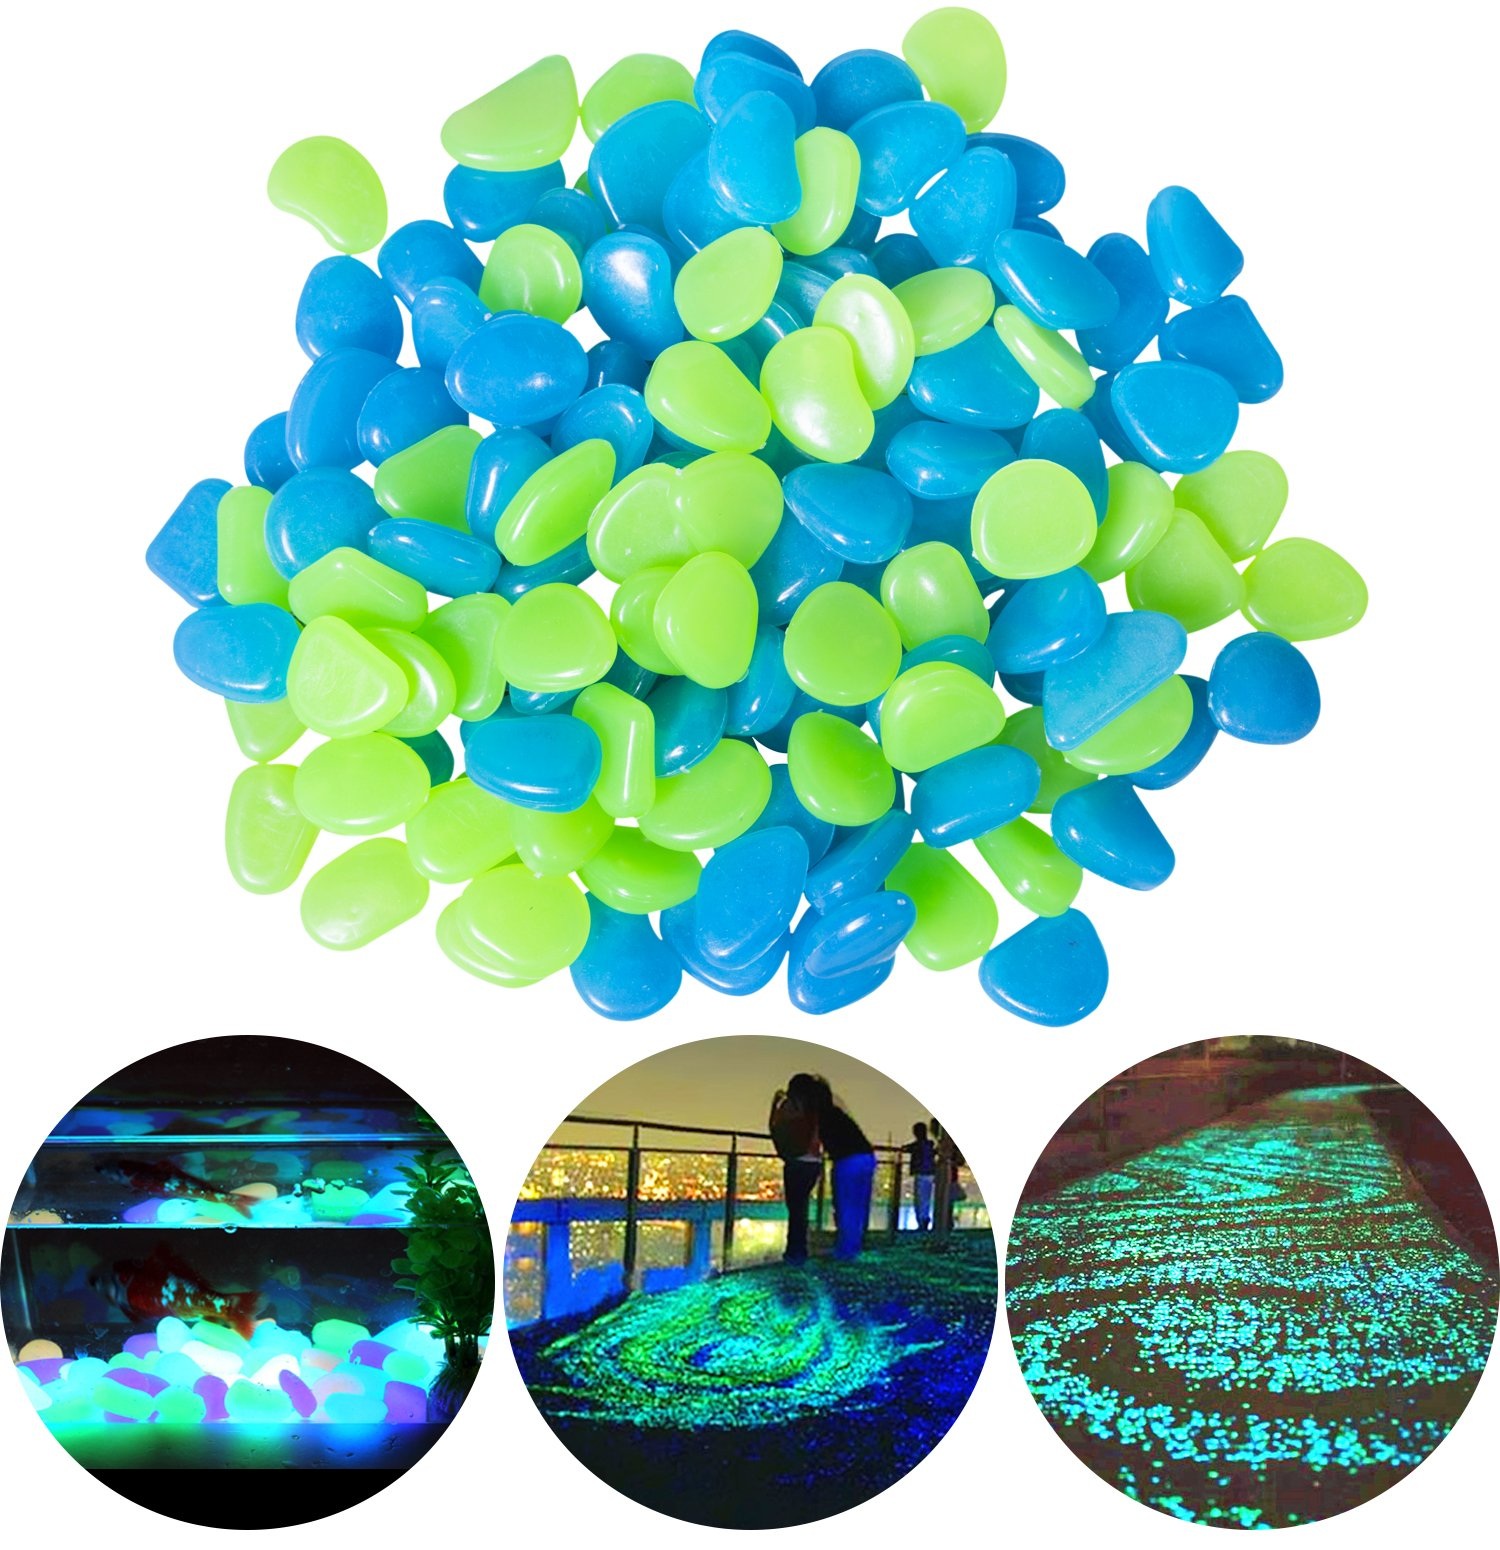 CandyHome 200Pack Glow in the Dark Garden Pebbles for Walkways Outdoor Decor Aquarium Fish Tank, Glow Stones Rocks for Path Lawn Yard Outdoor Garden Decorative Stones (Blue & Green) by CandyHome